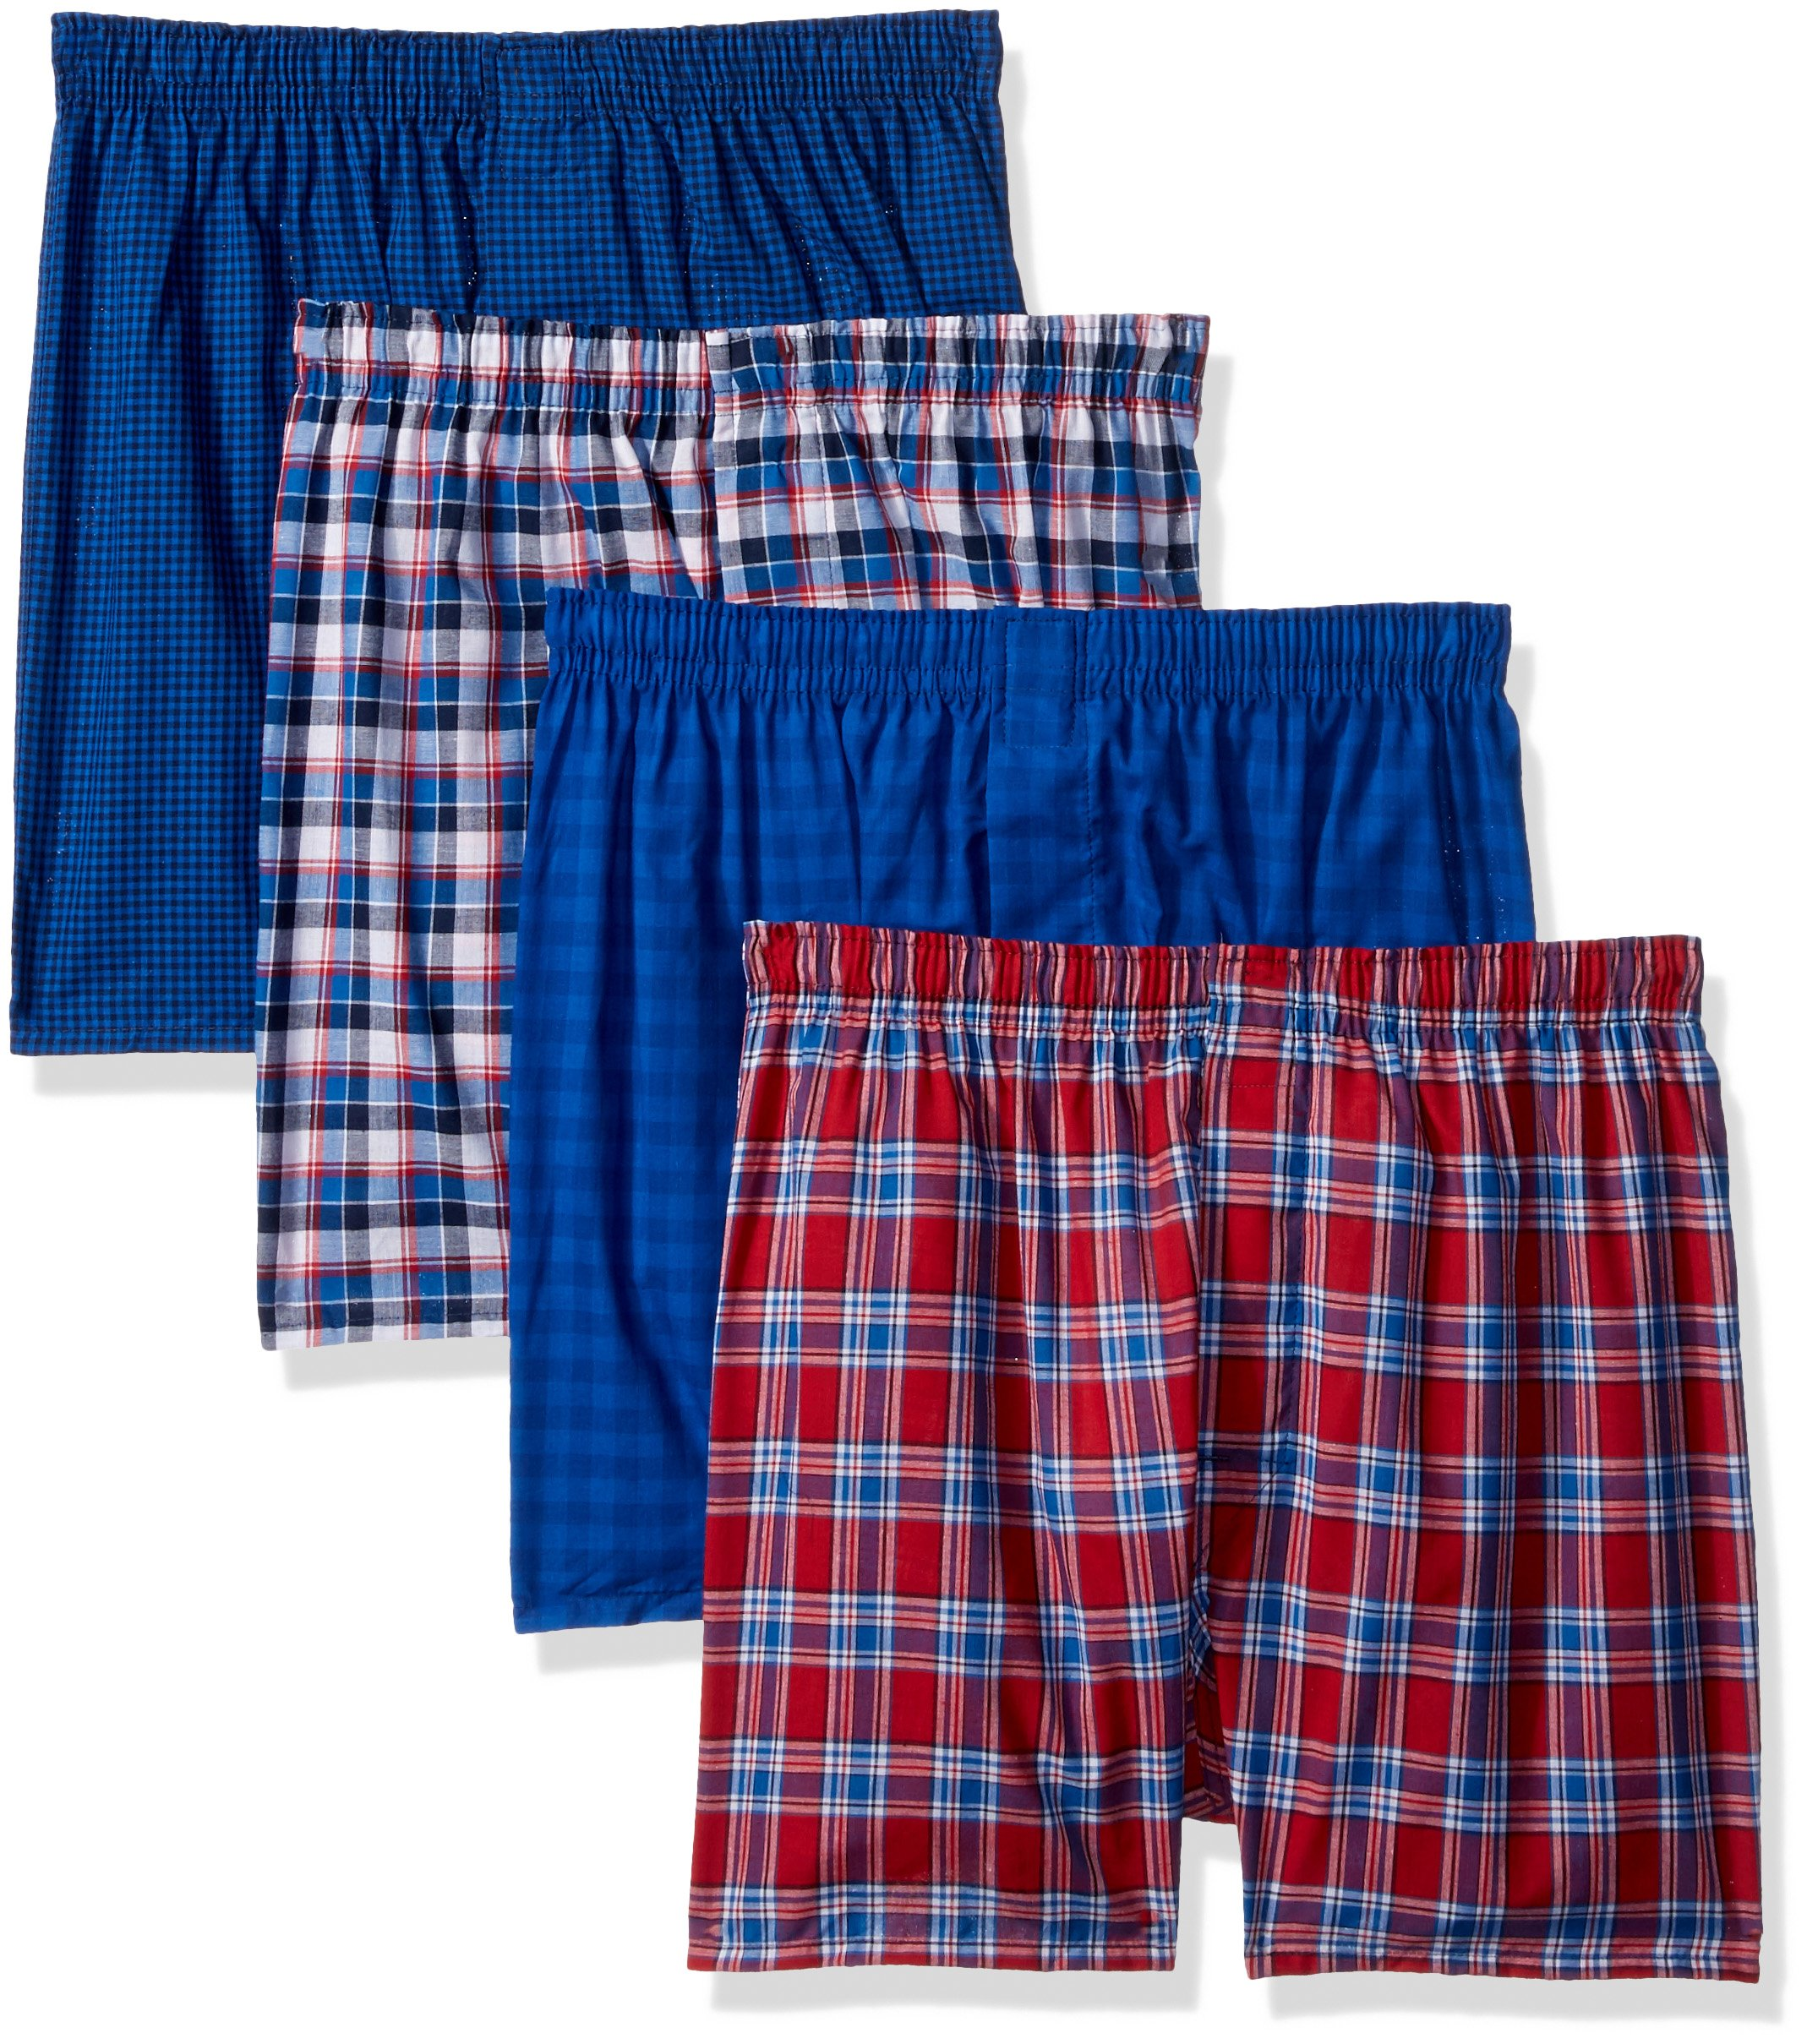 Hanes Men's 4-Pack ComfortBlend Woven Boxers with FreshIQ, Assorted, Large